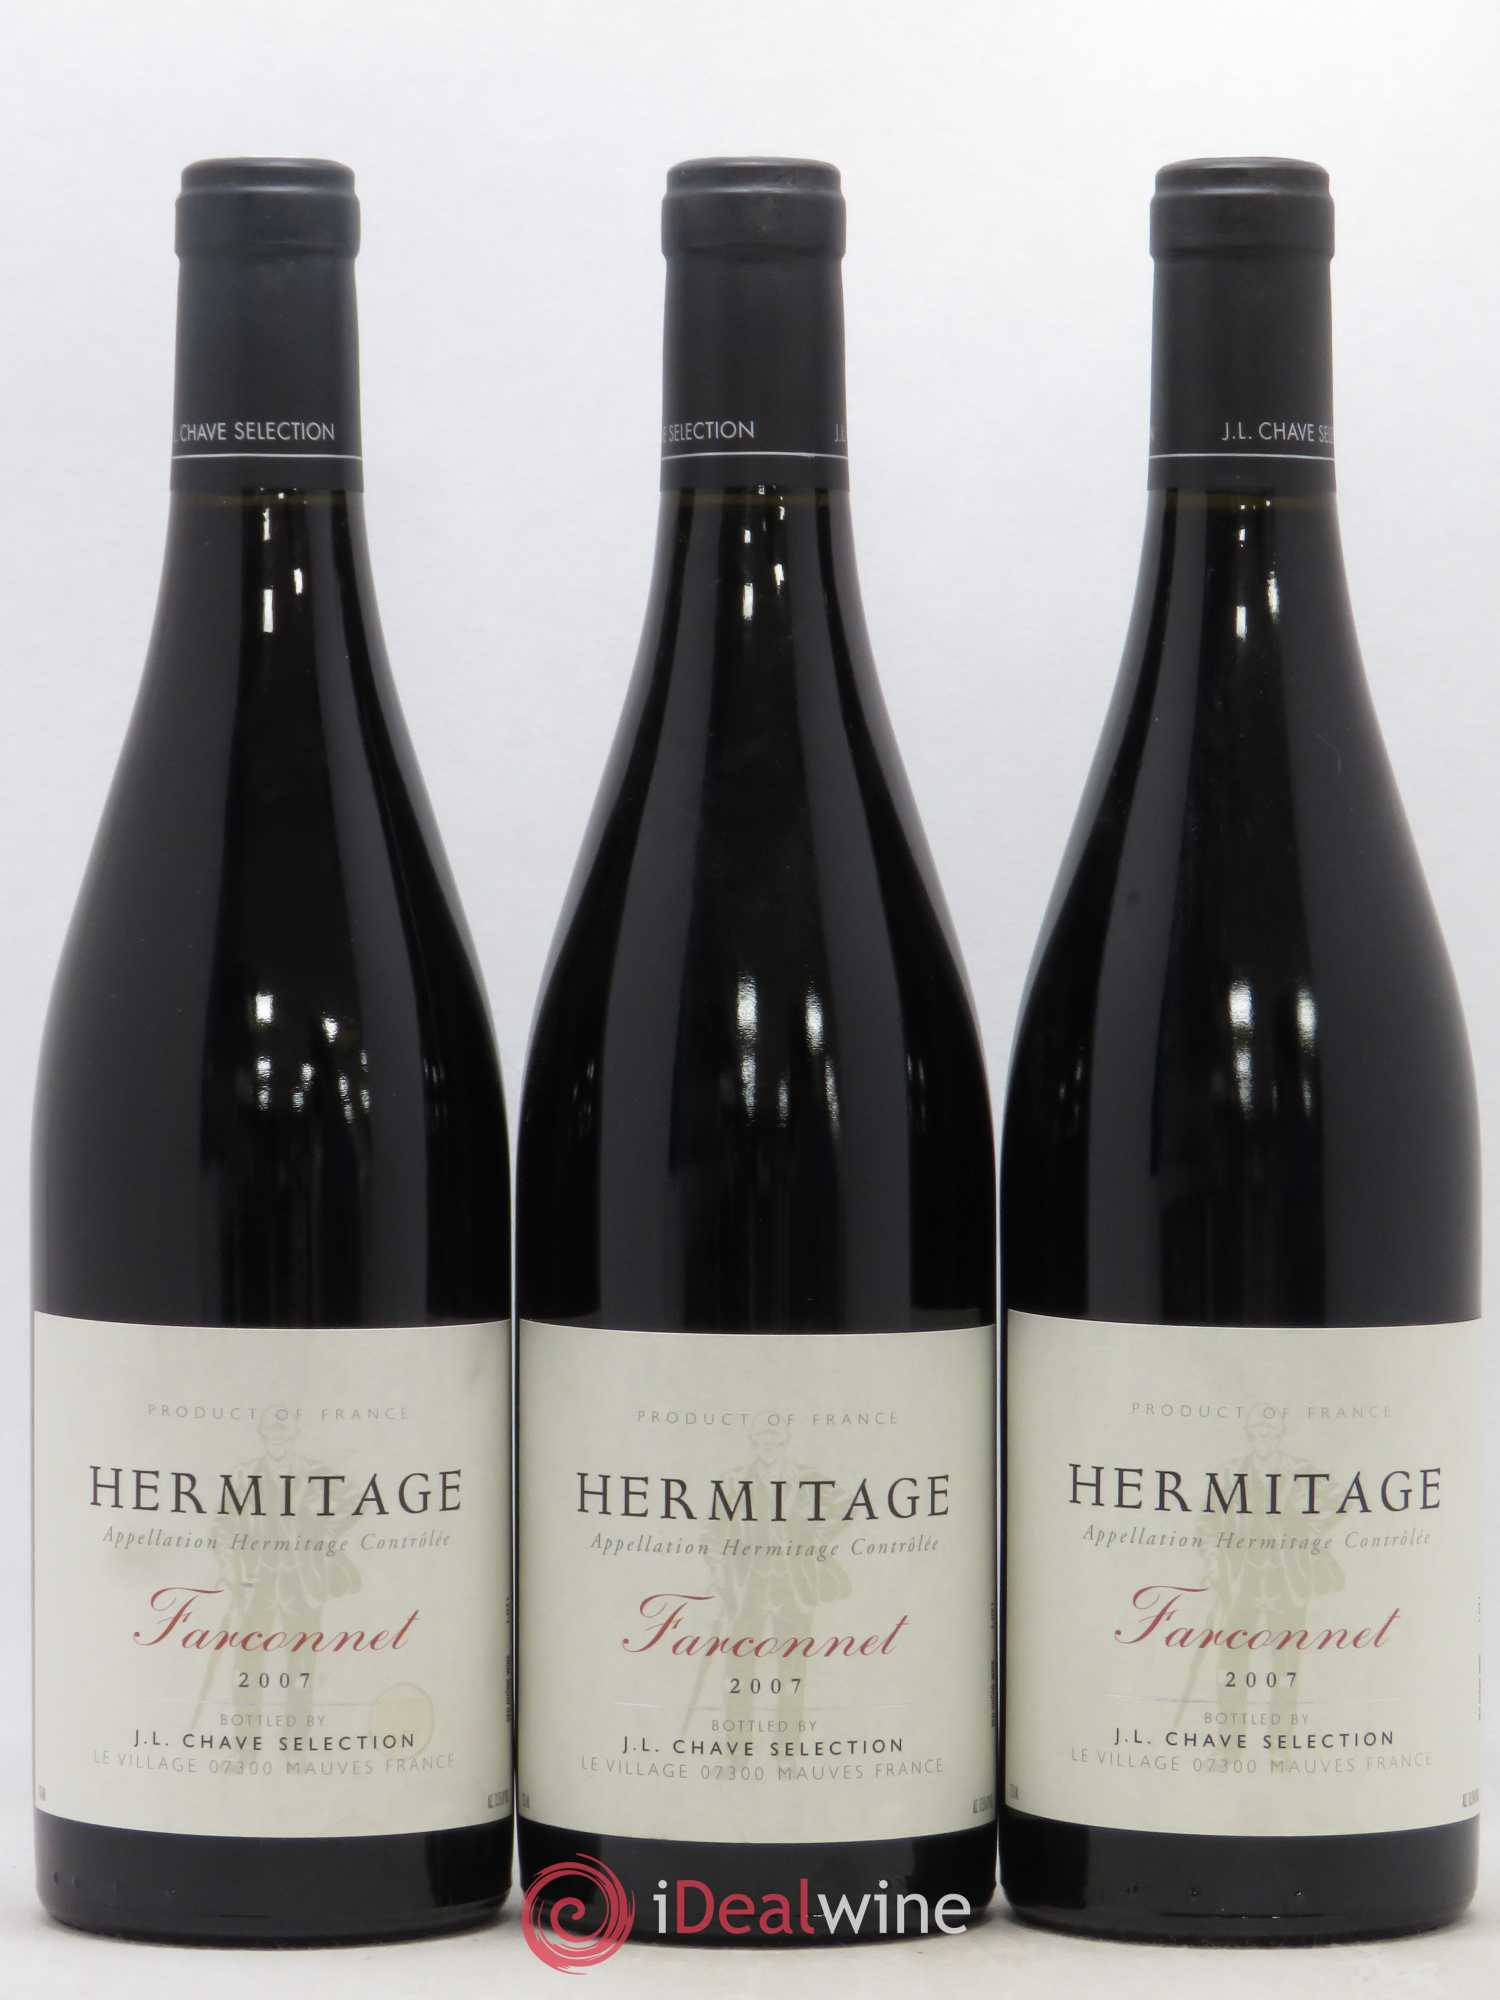 Hermitage Le Farconnet Jean-Louis Chave  2007 - Lot of 3 Bottles